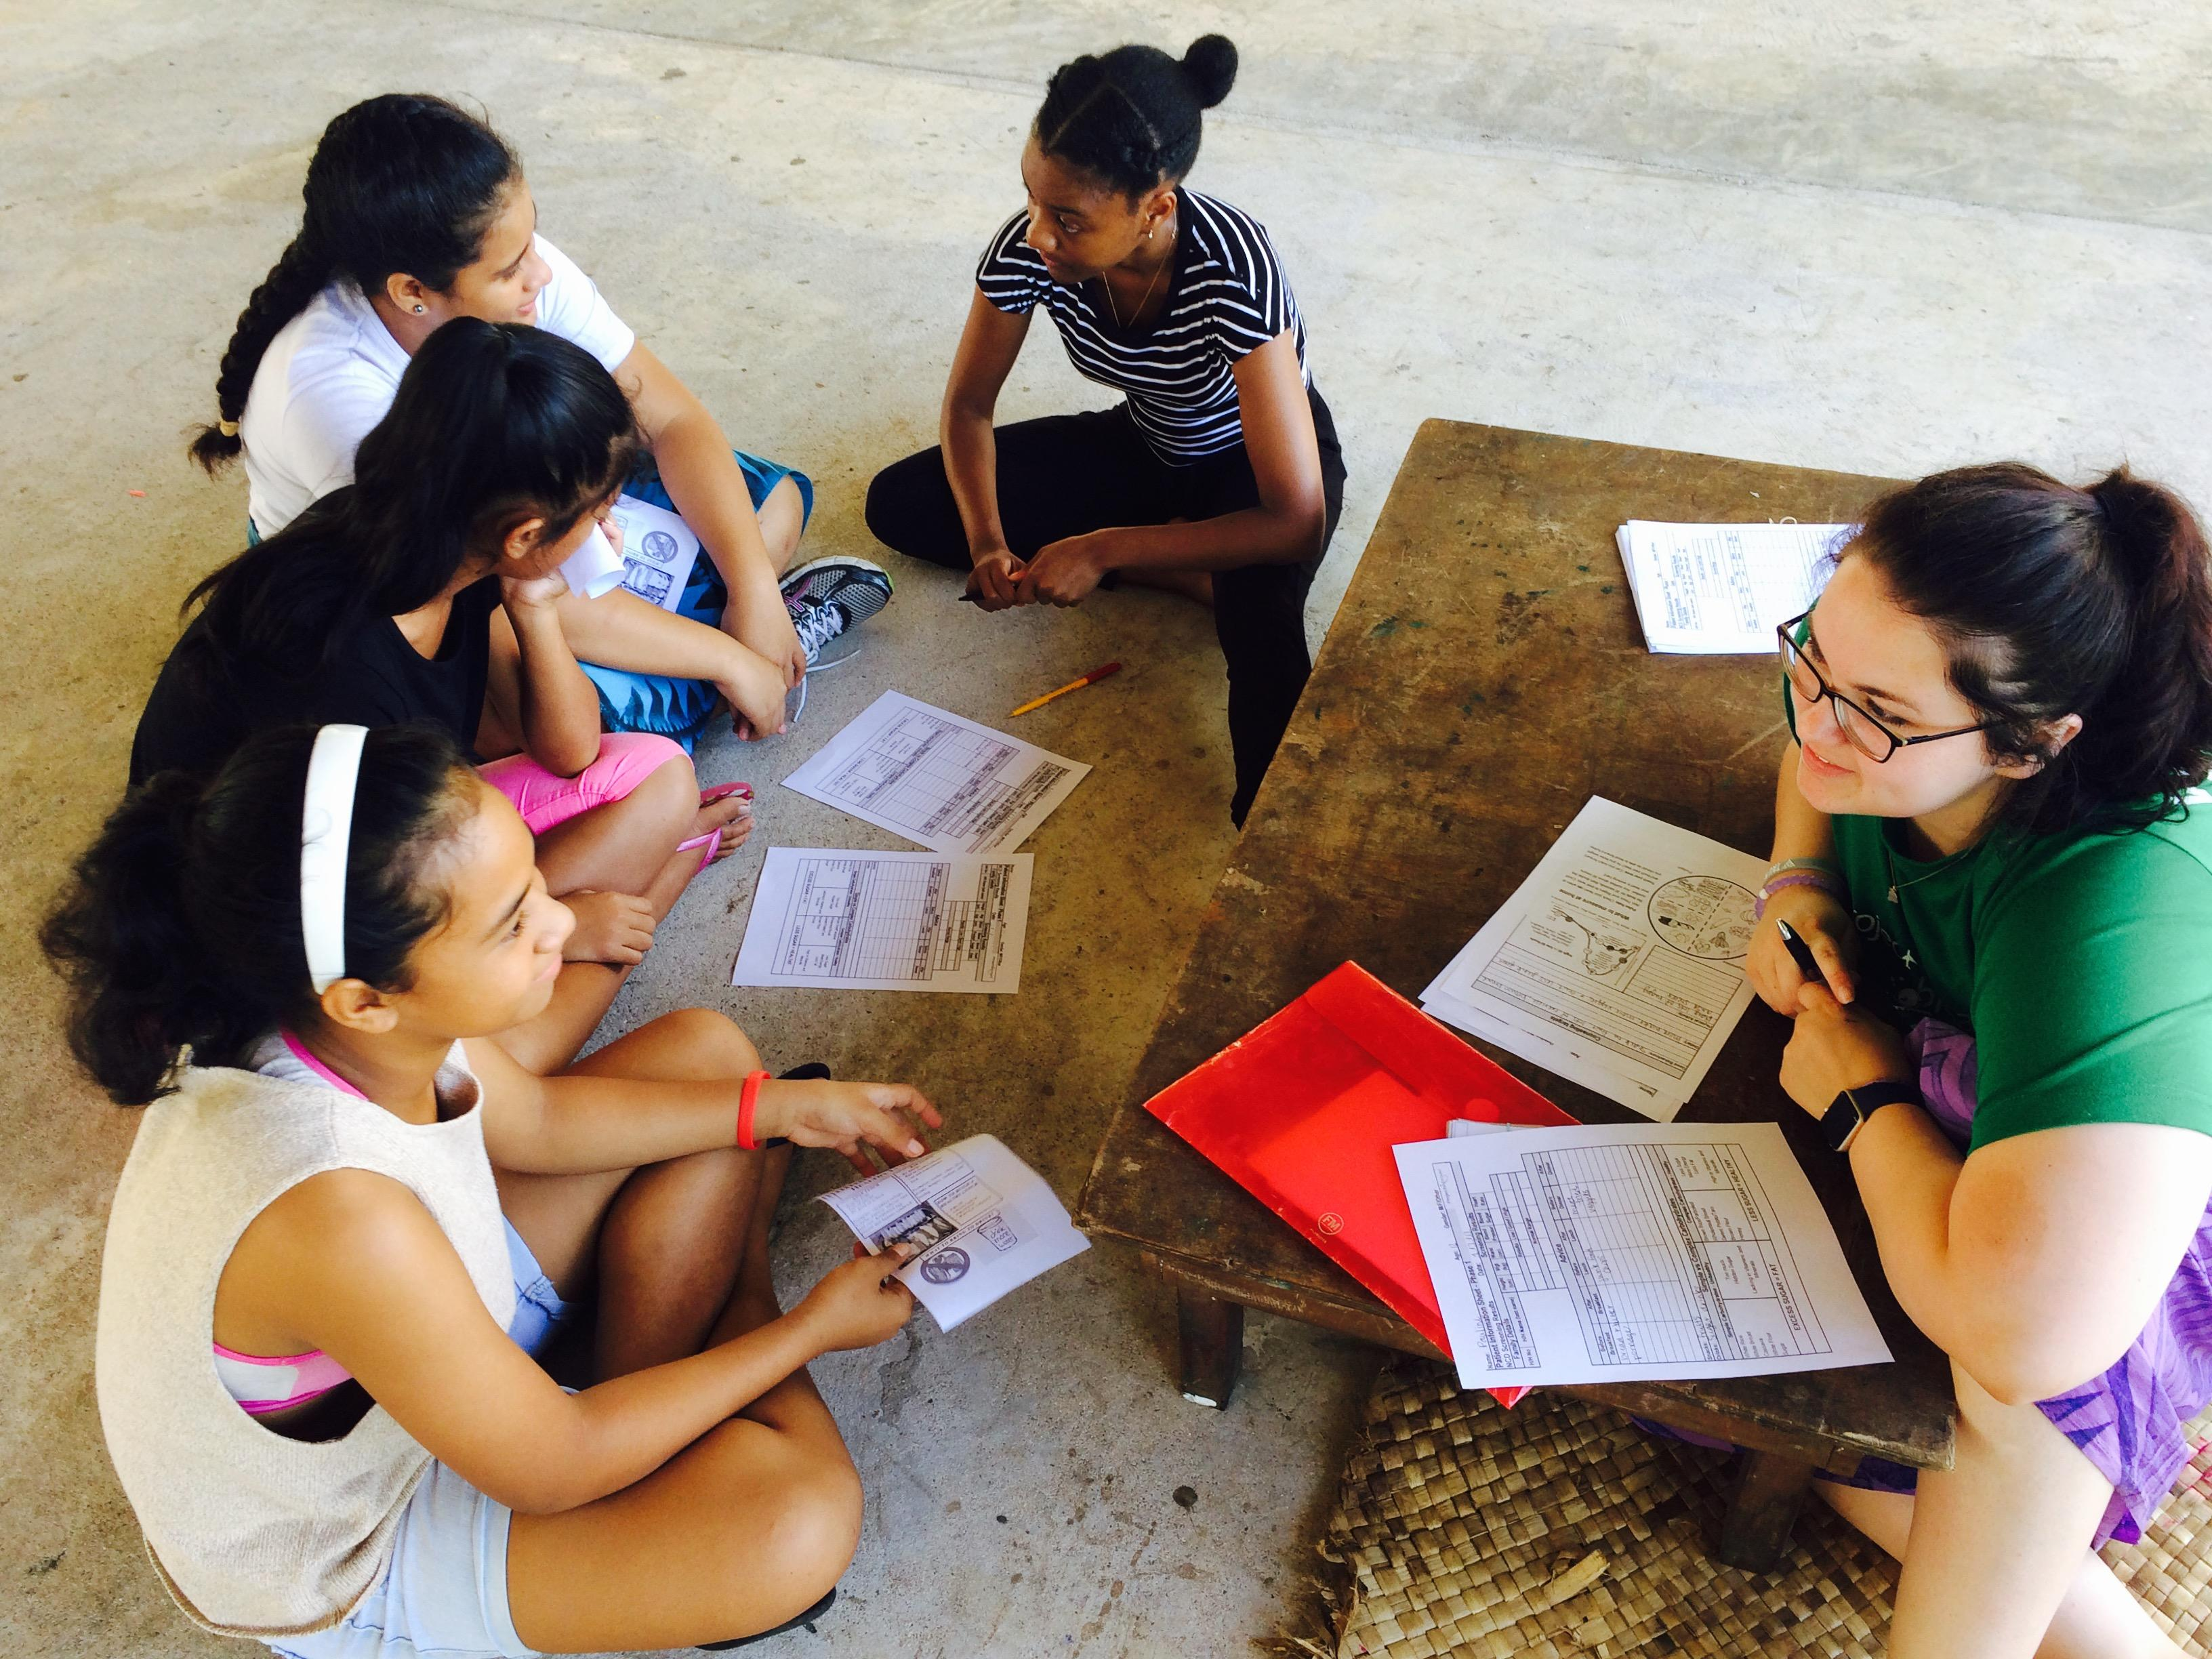 A student discusses healthy eating with local children during her Nutrition internship in Samoa.